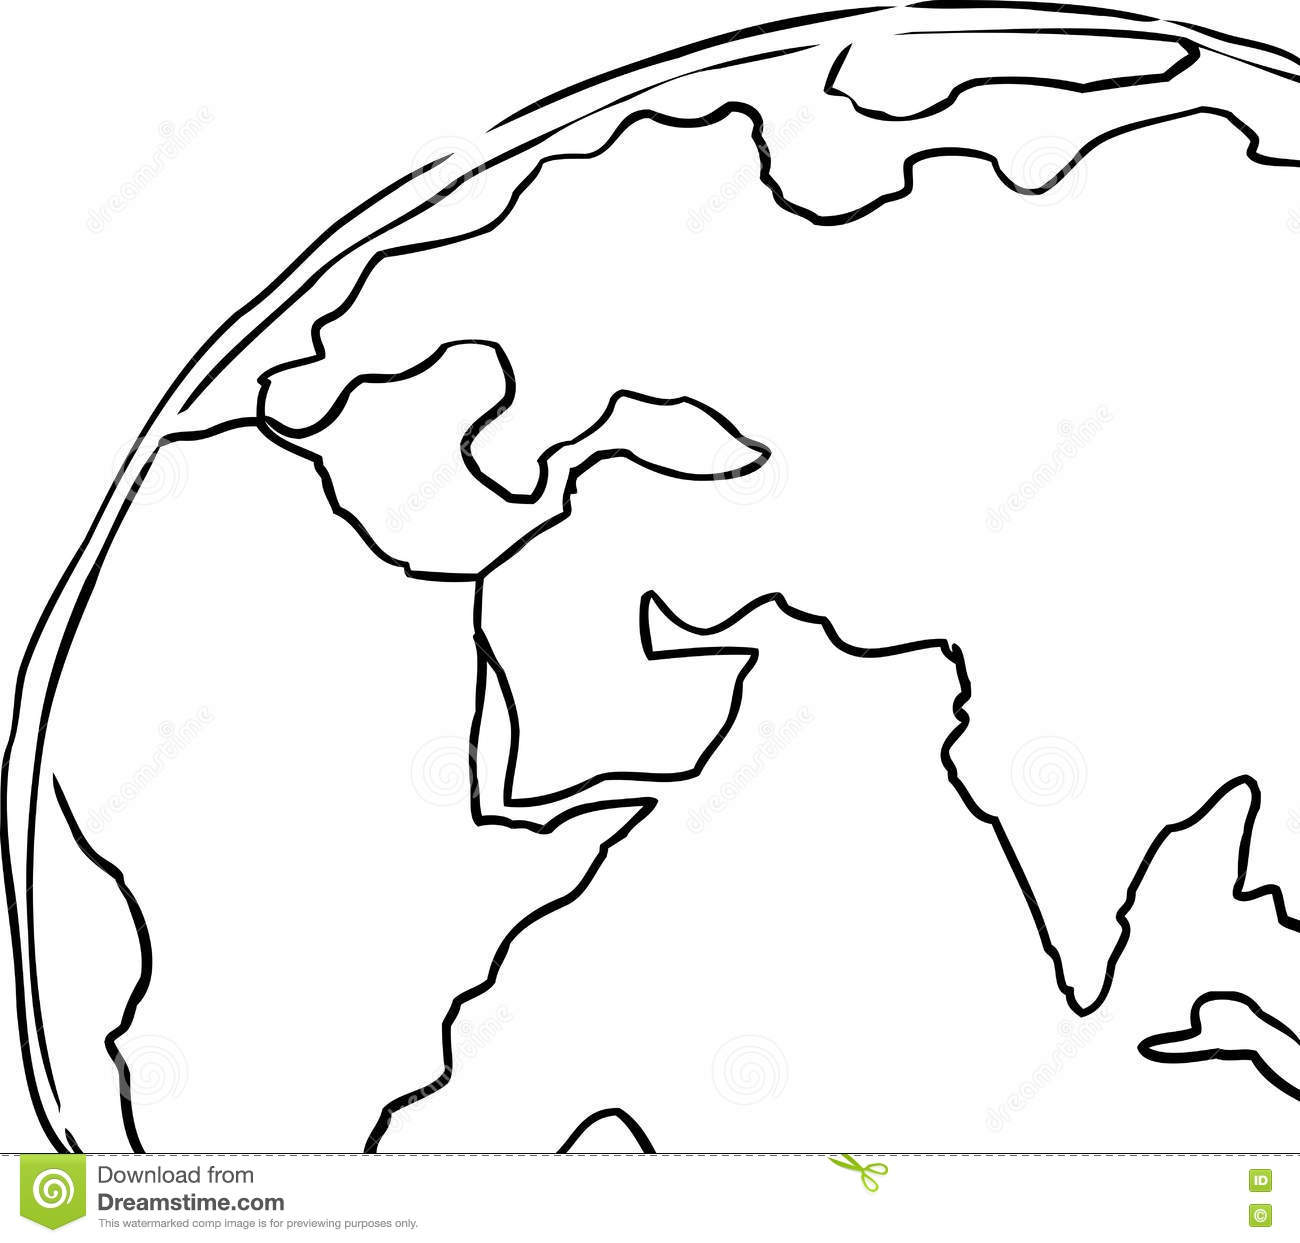 Earth Outline With Earth Clipart Outline : Earth Outline Outline.